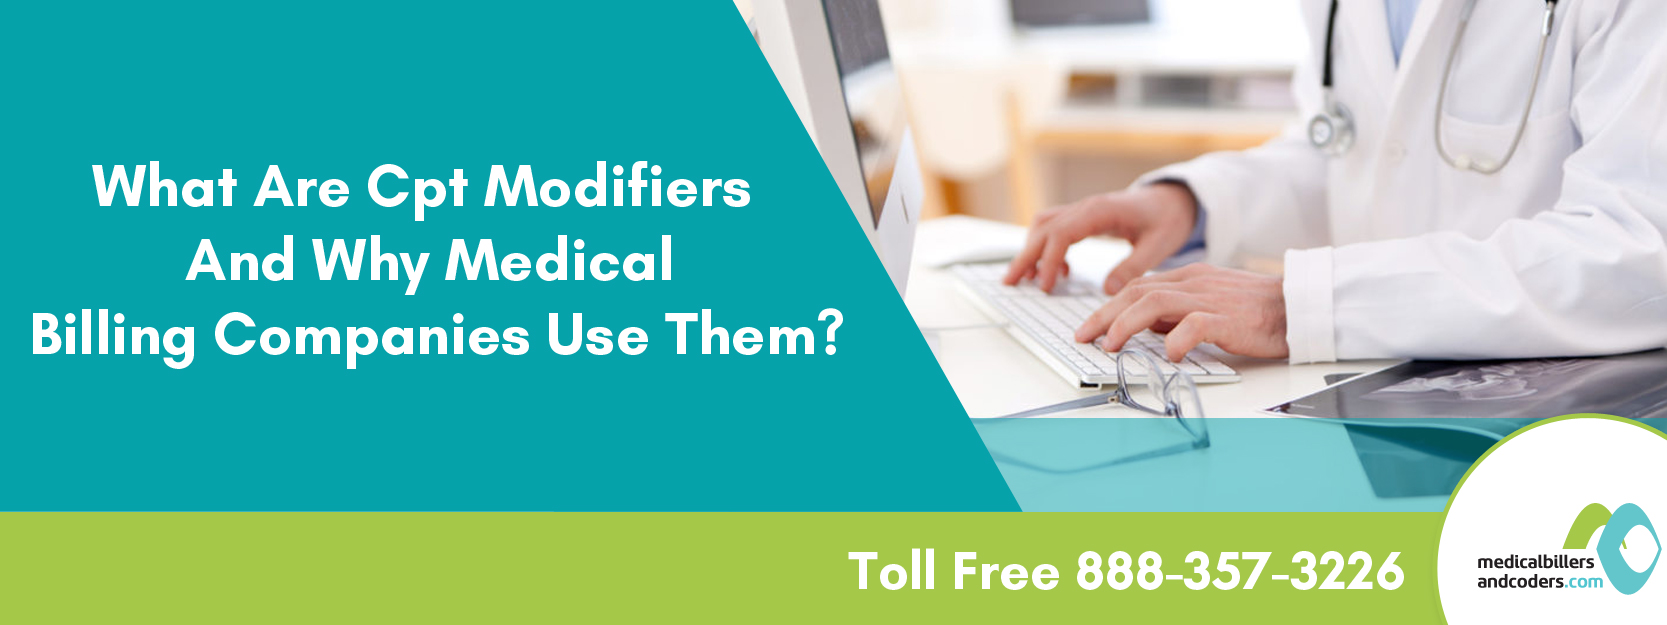 blog-what-are-cpt-modifiers-and-why-medical-billing-companies-use-them